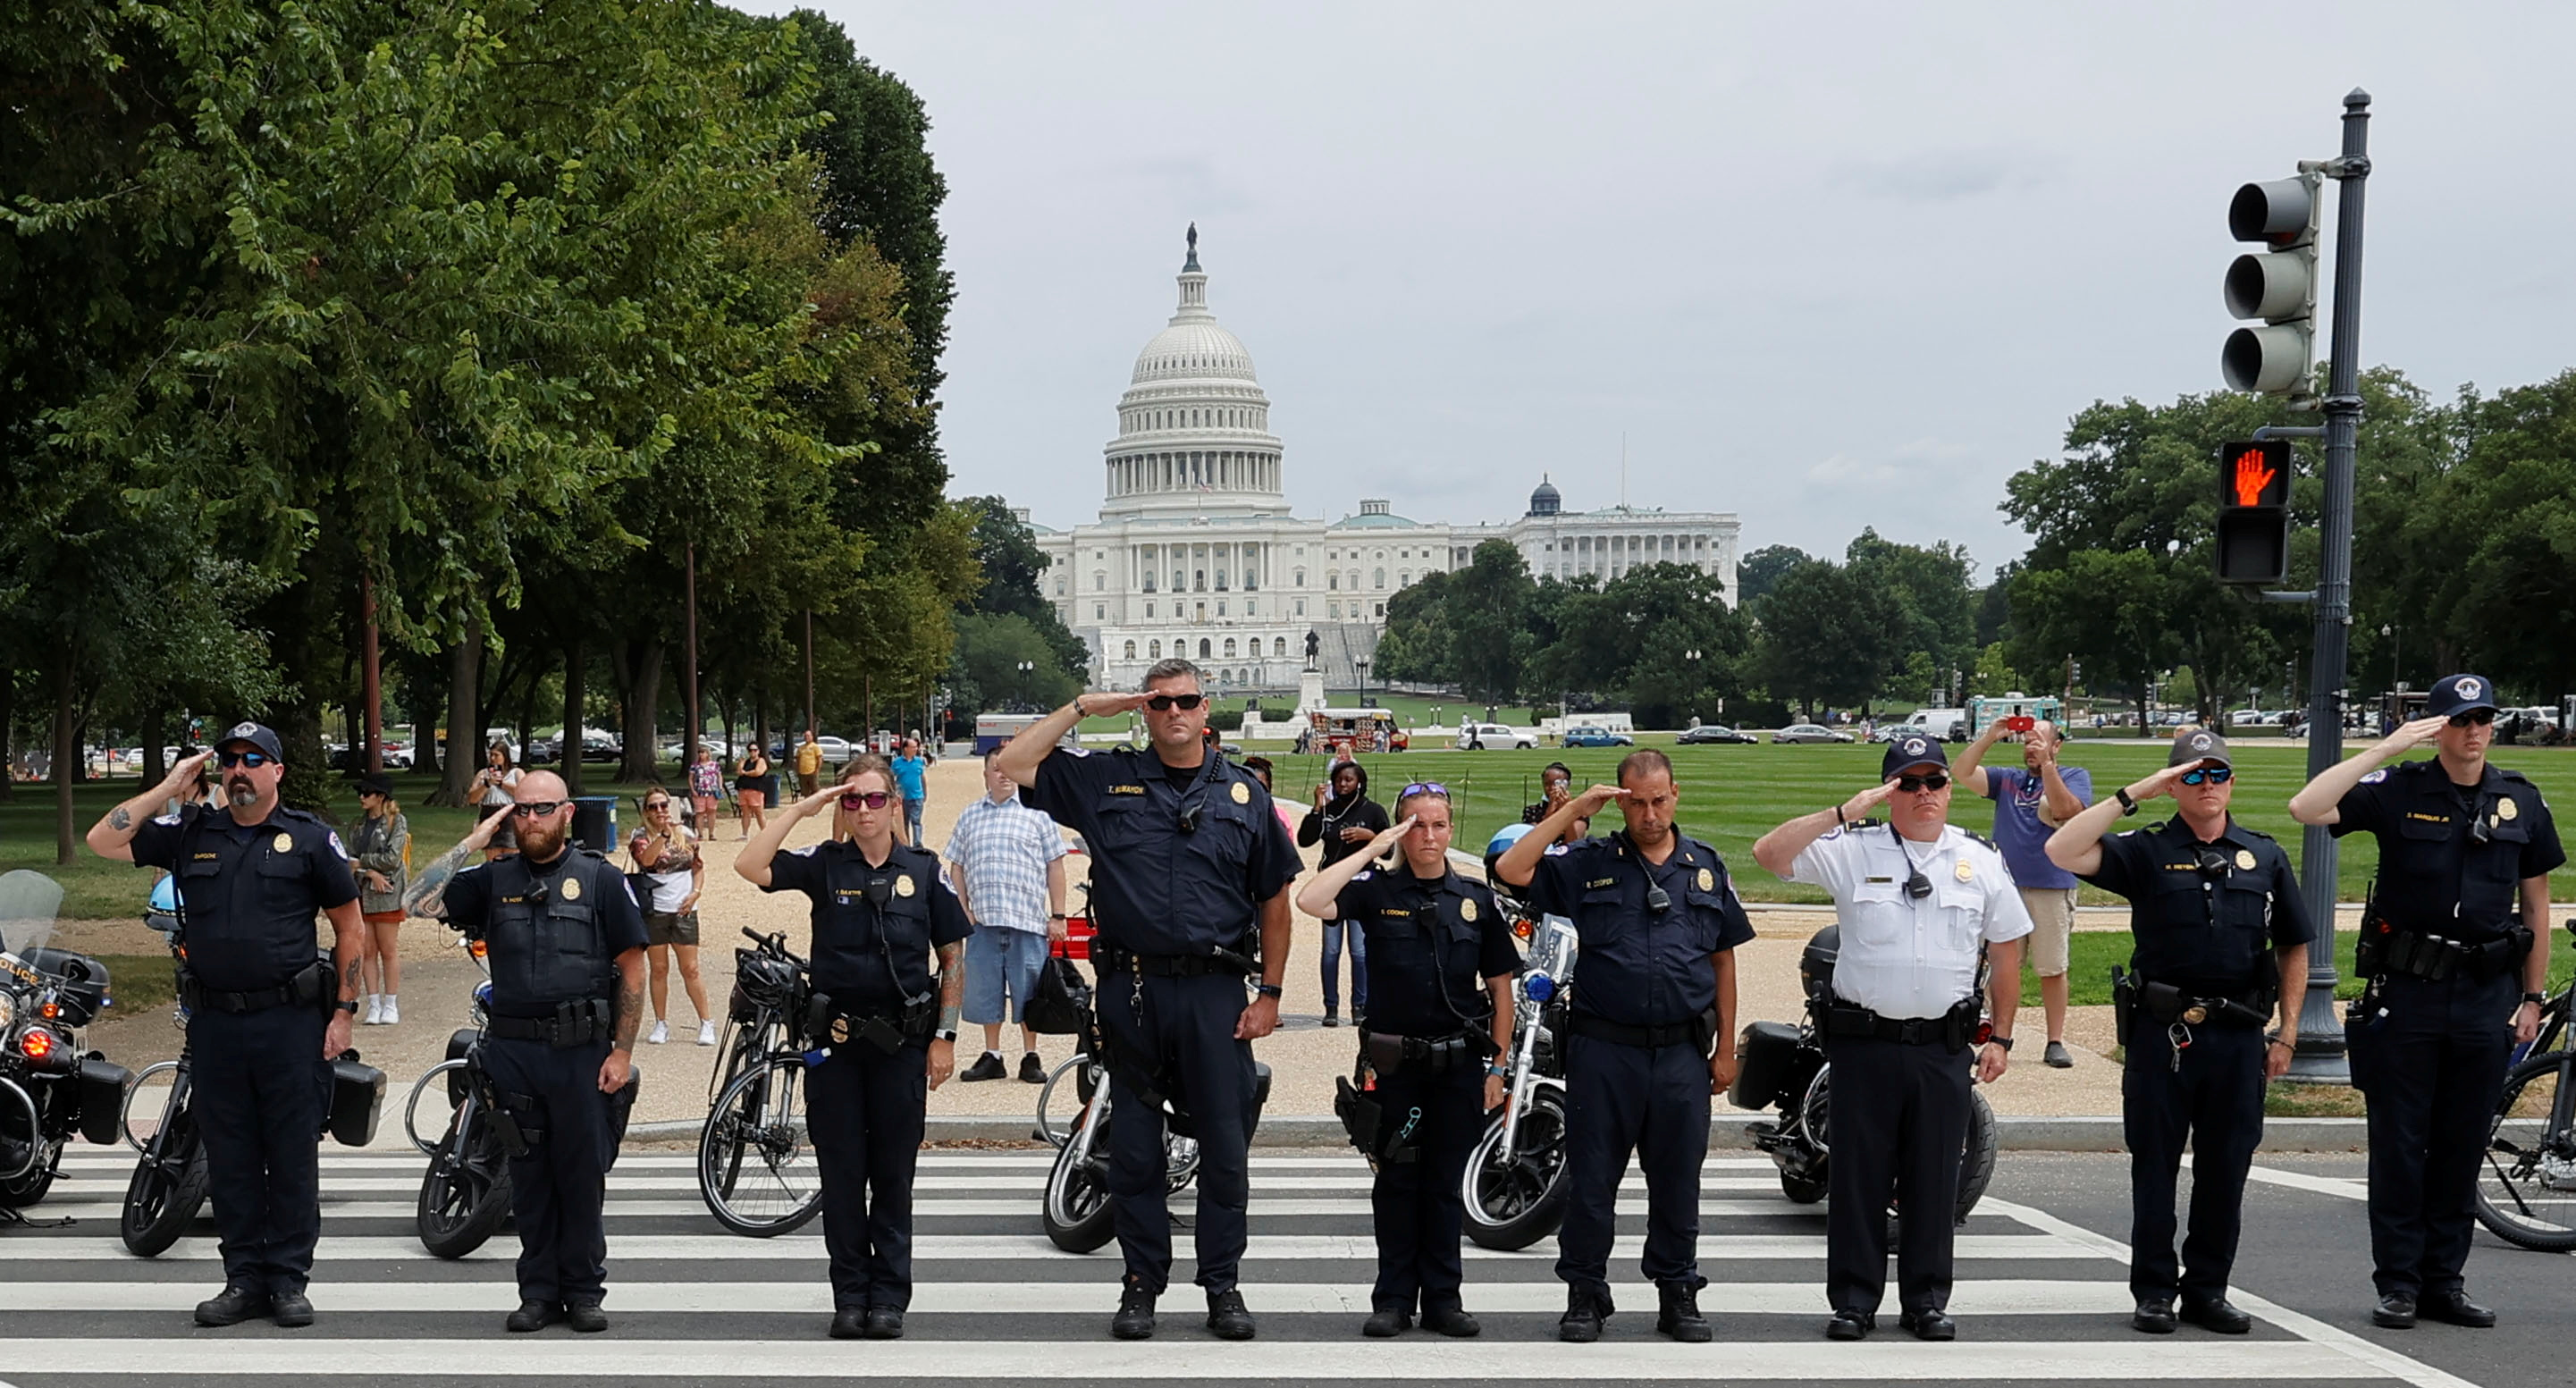 Law enforcement officers from Washington's Metropolitan Police Department, the U.S. Capitol Police, the Pentagon Force Protection Agency and other police departments salute as a ceremonial procession in honor of a police officer wounded in a shooting at the Pentagon earlier in the day passes the U.S. Capitol in Washington, August 3, 2021.  REUTERS/Jim Bourg